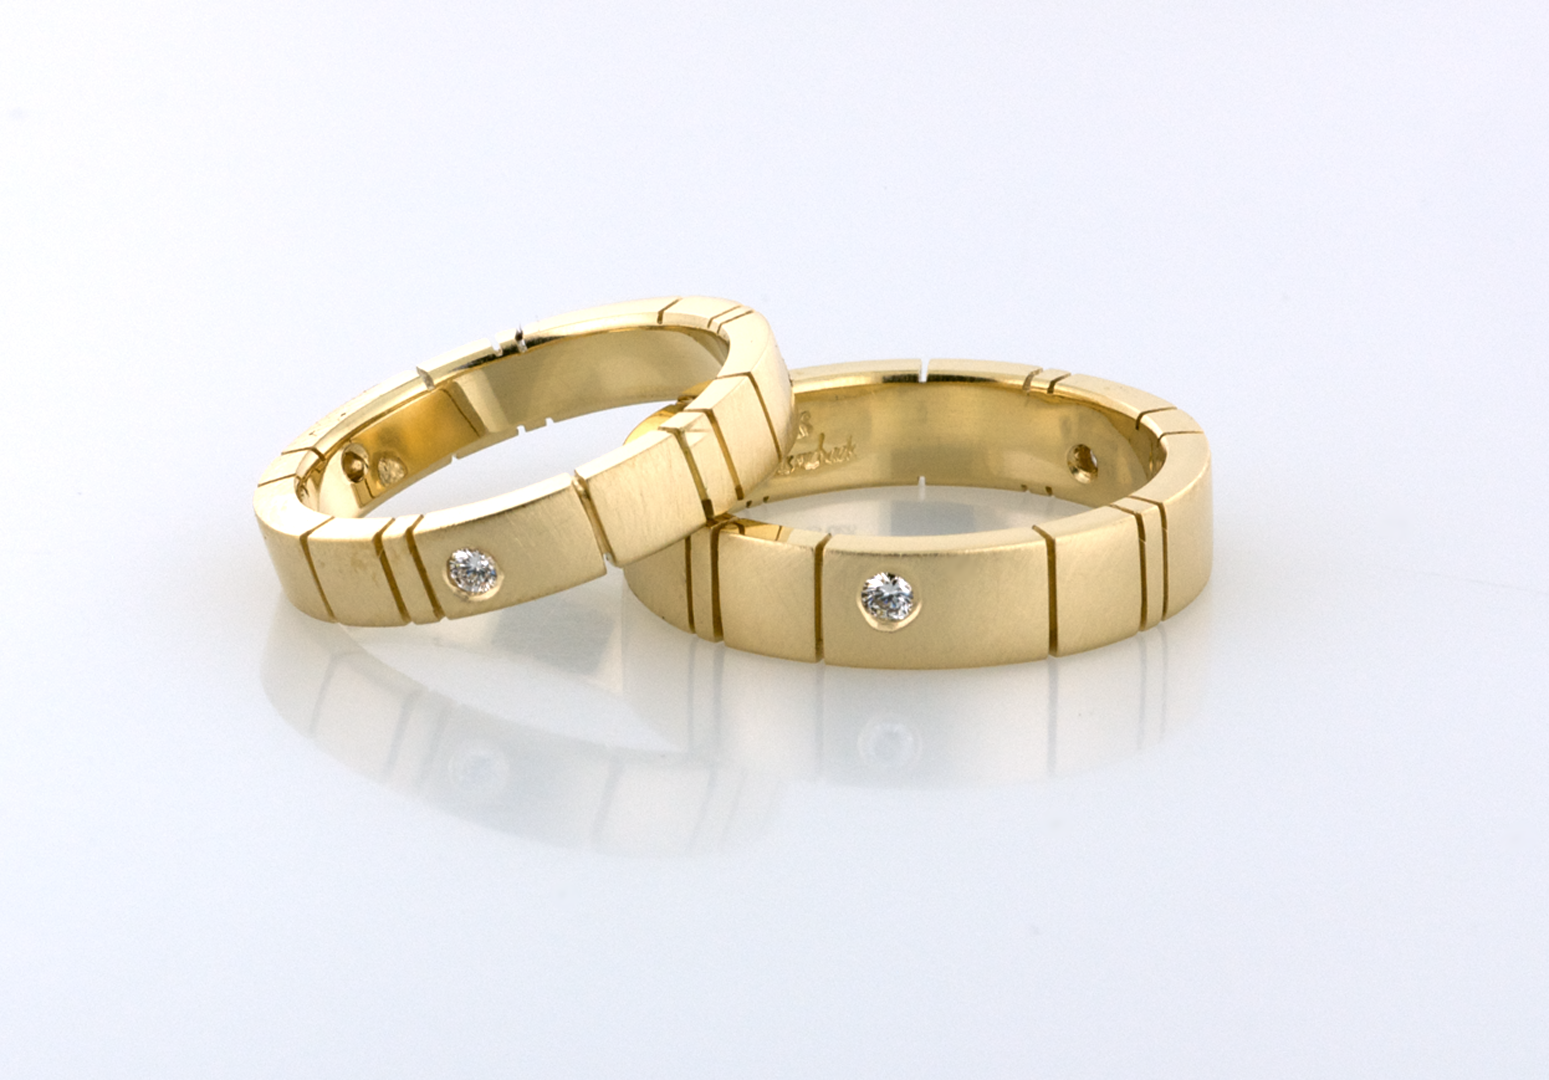 gold wedding bands set with diamonds Copyrighted Original by Thomas Michaels